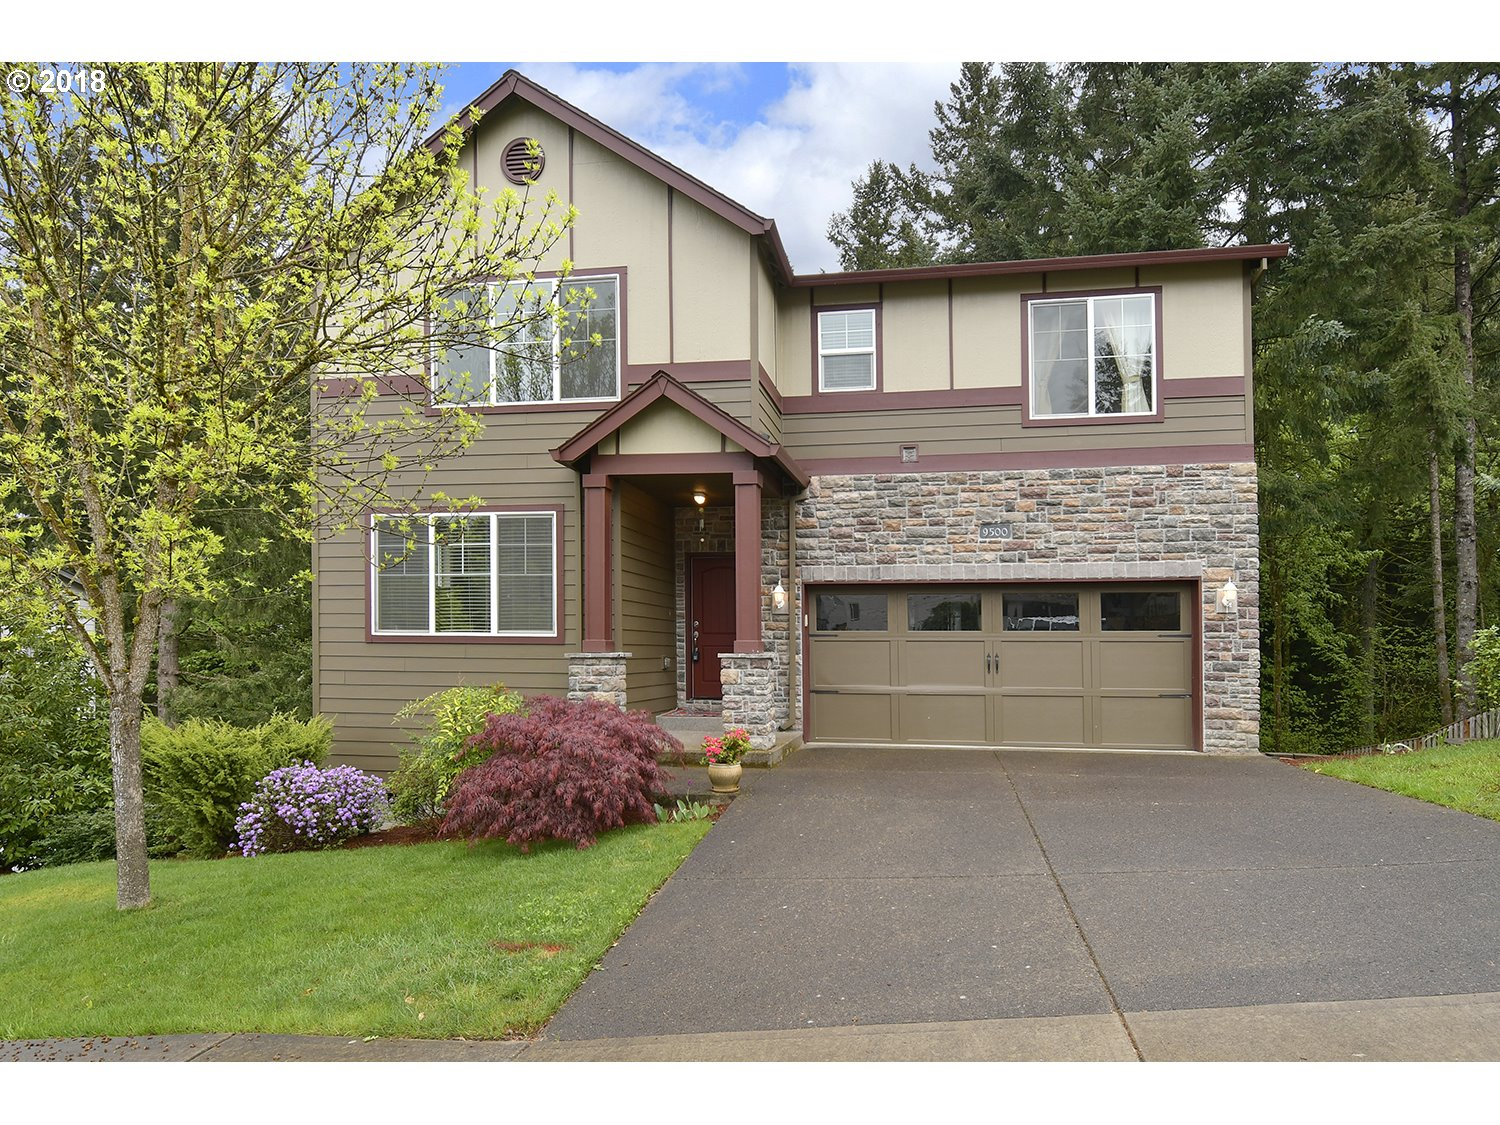 Beautiful well maintained Sexton Mtn. home backs to green space. Great rm style floor plan, gorgeous Brazilian cherry floors on main, kitchen with granite counters and gas appls, dining rm with slider to the deck, main level Den/Office. Vaulted master suite w/fireplace & seating area. Family rm/bonus rm w/fireplace/slider to the deck. Close to Nike, Columbia & Intel.